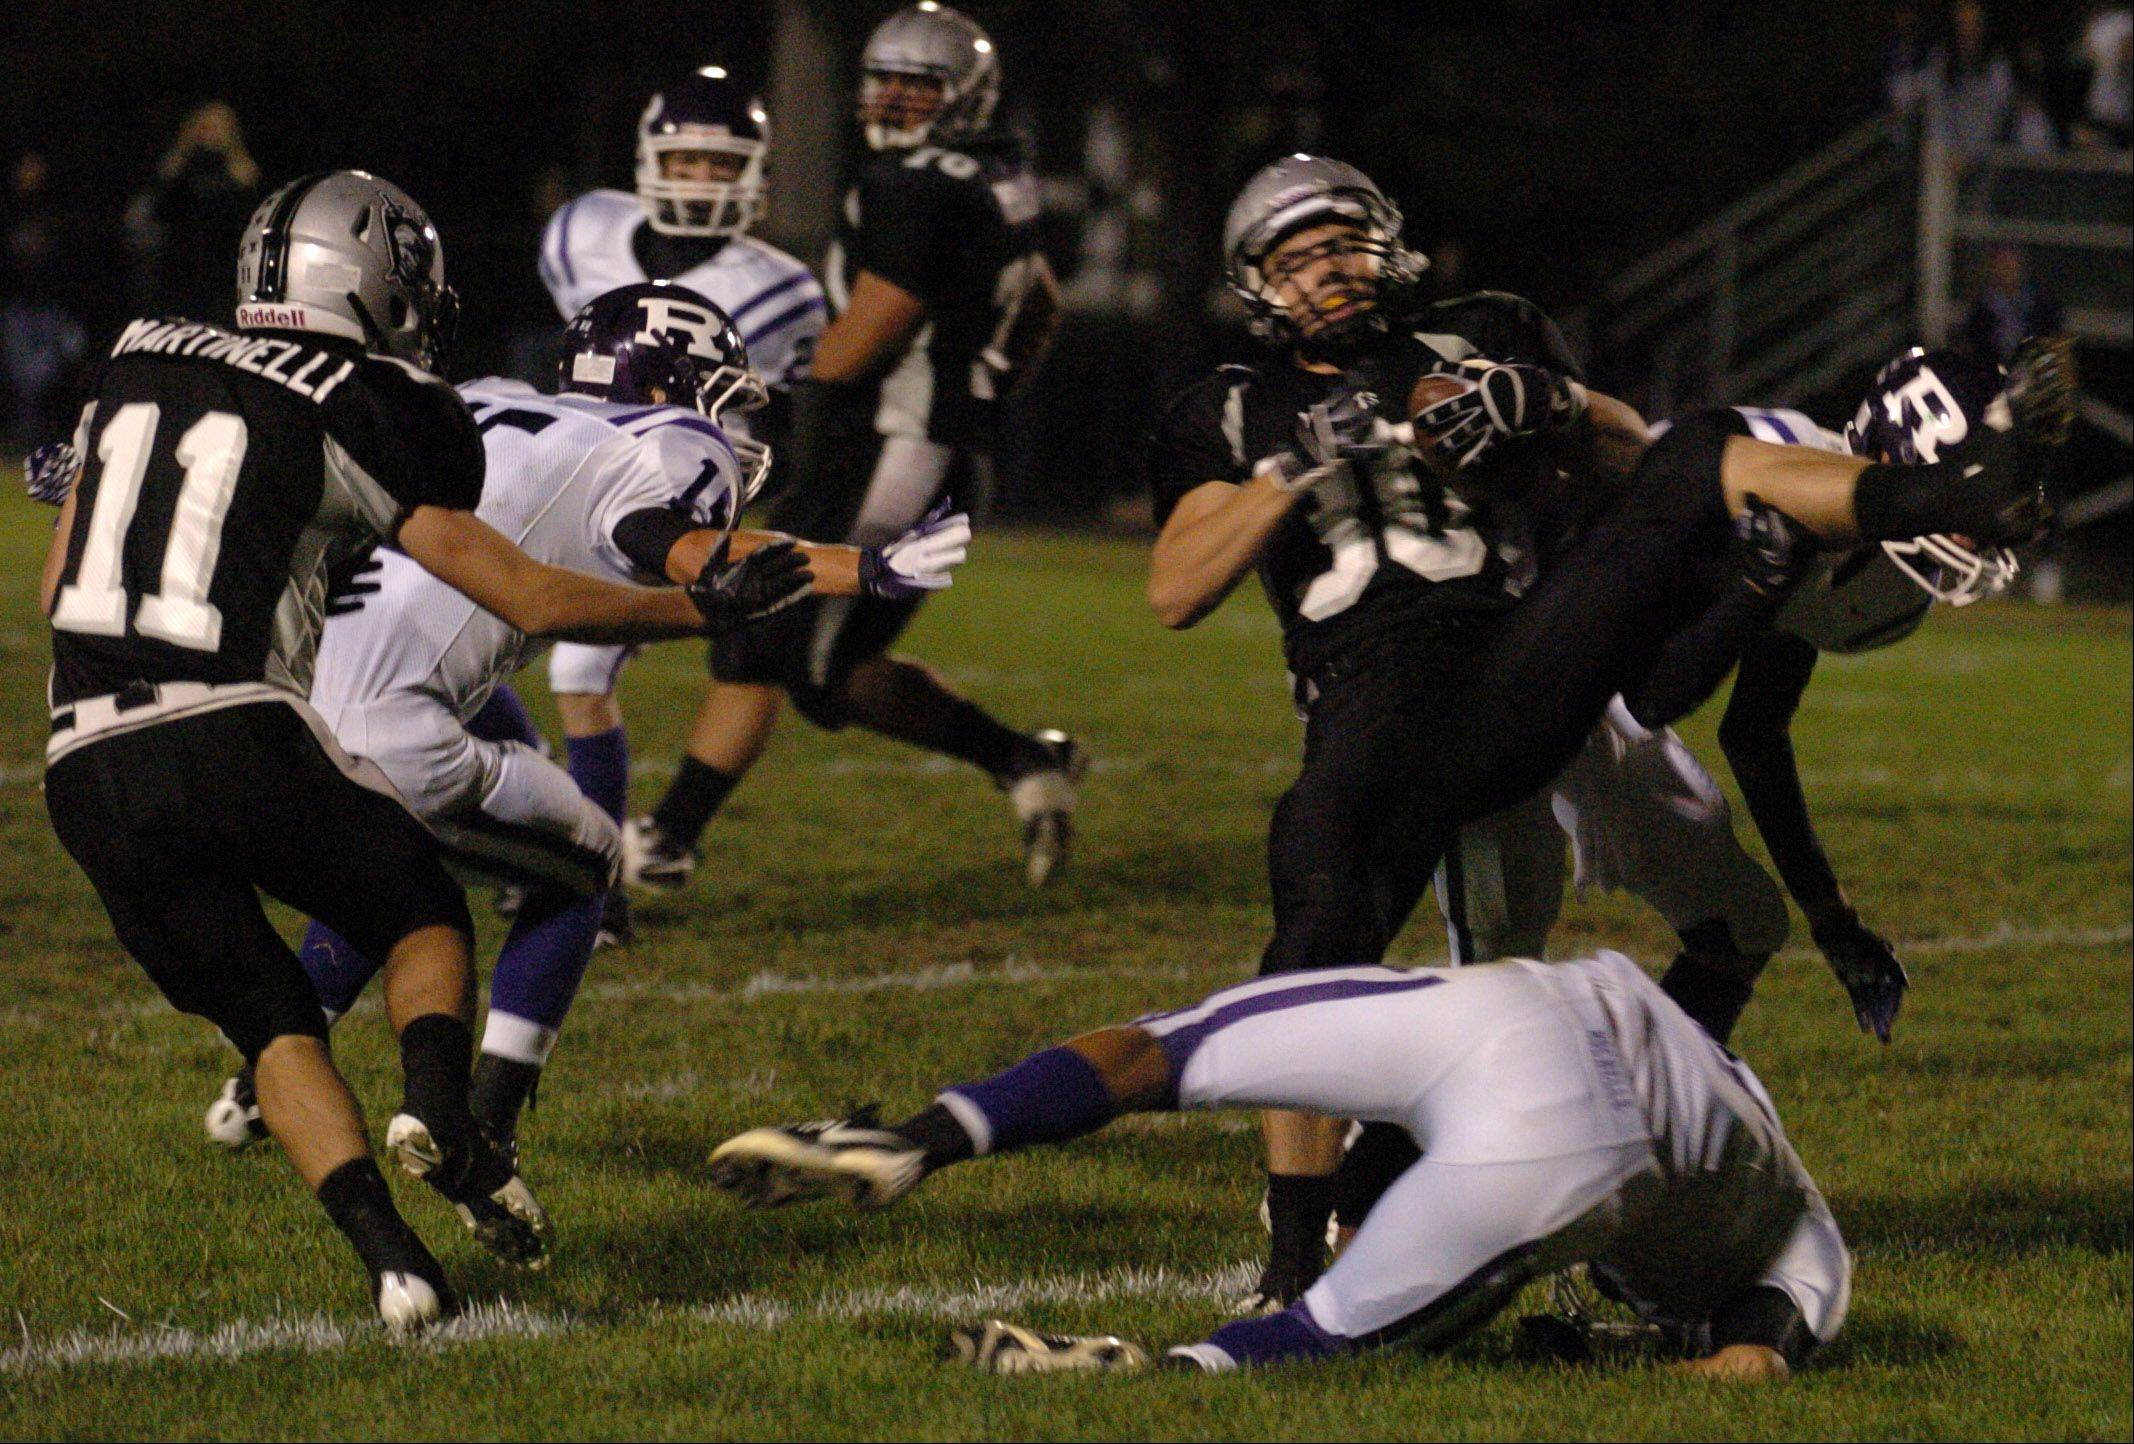 Kaneland's Jesse Balluff runs the ball through the Rochelle defense Friday at Kaneland High School.